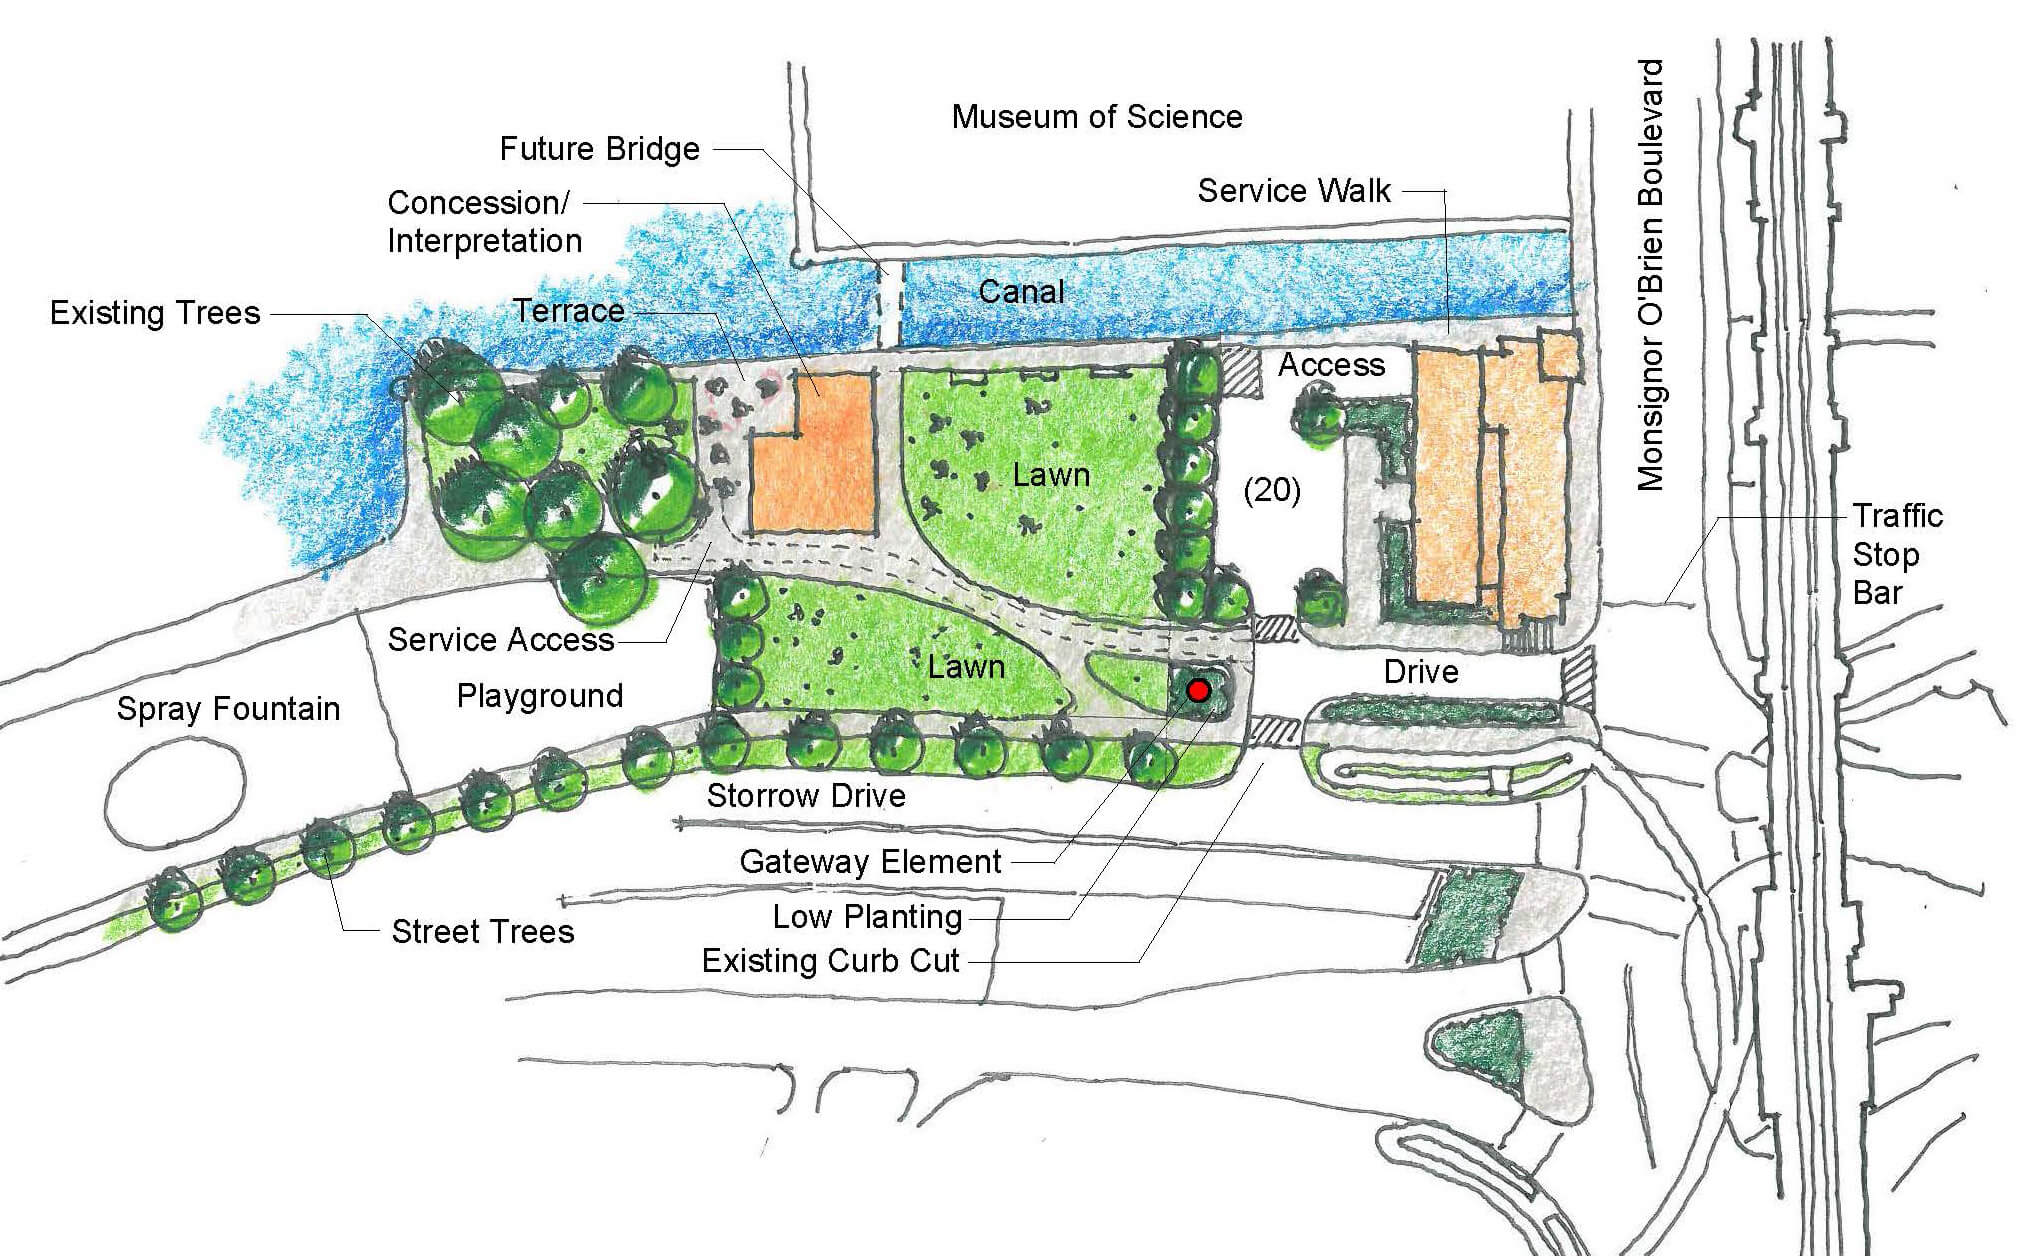 Plan of the Lower Basin Barracks with landscaping, pedestrian paths and a terrace outlined.